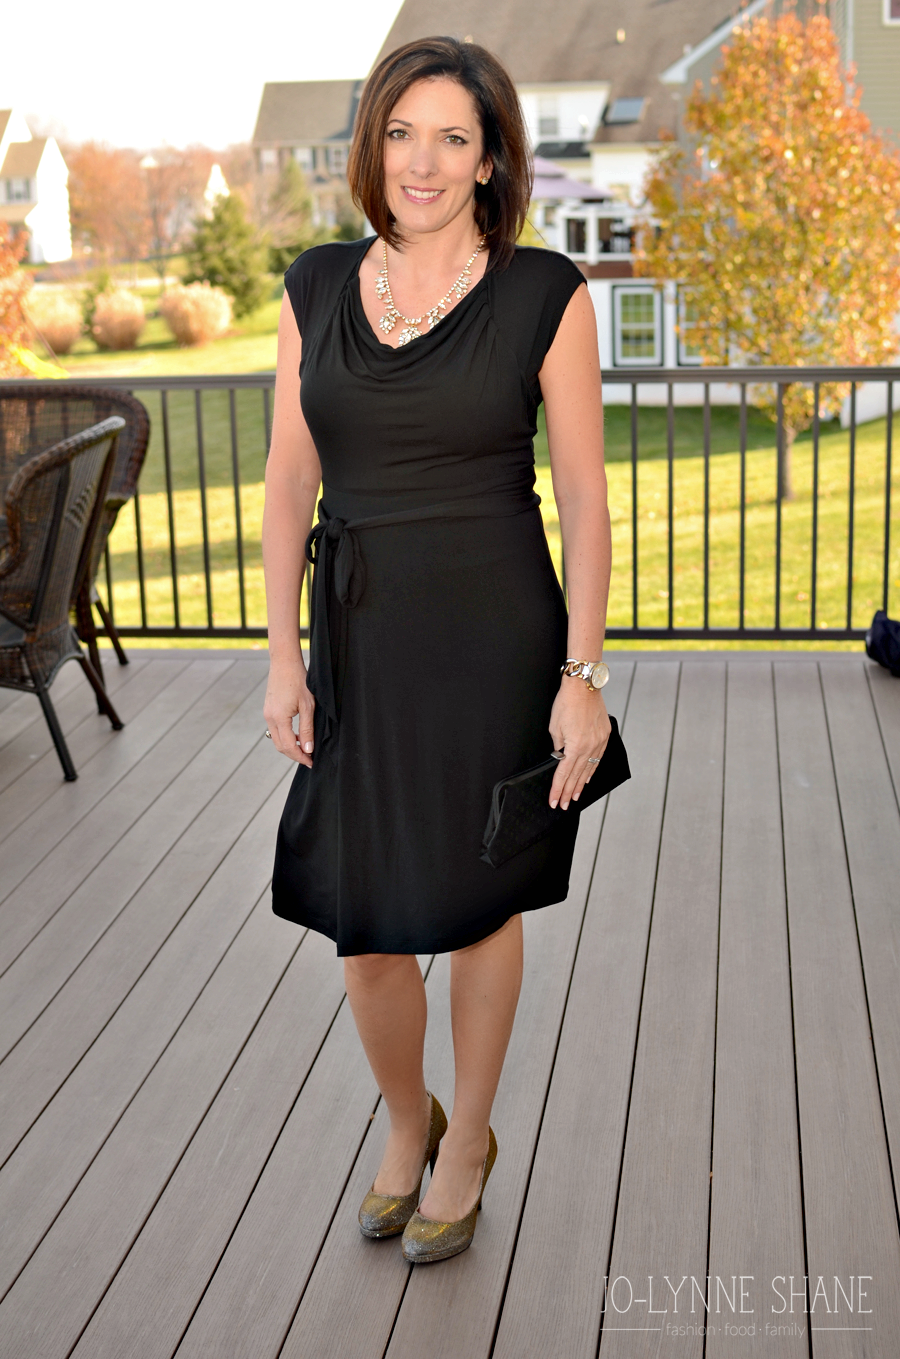 Dresses from ross - Dress Up Your Lbd For A Holiday Party With A Great Pair Of Party Shoes From